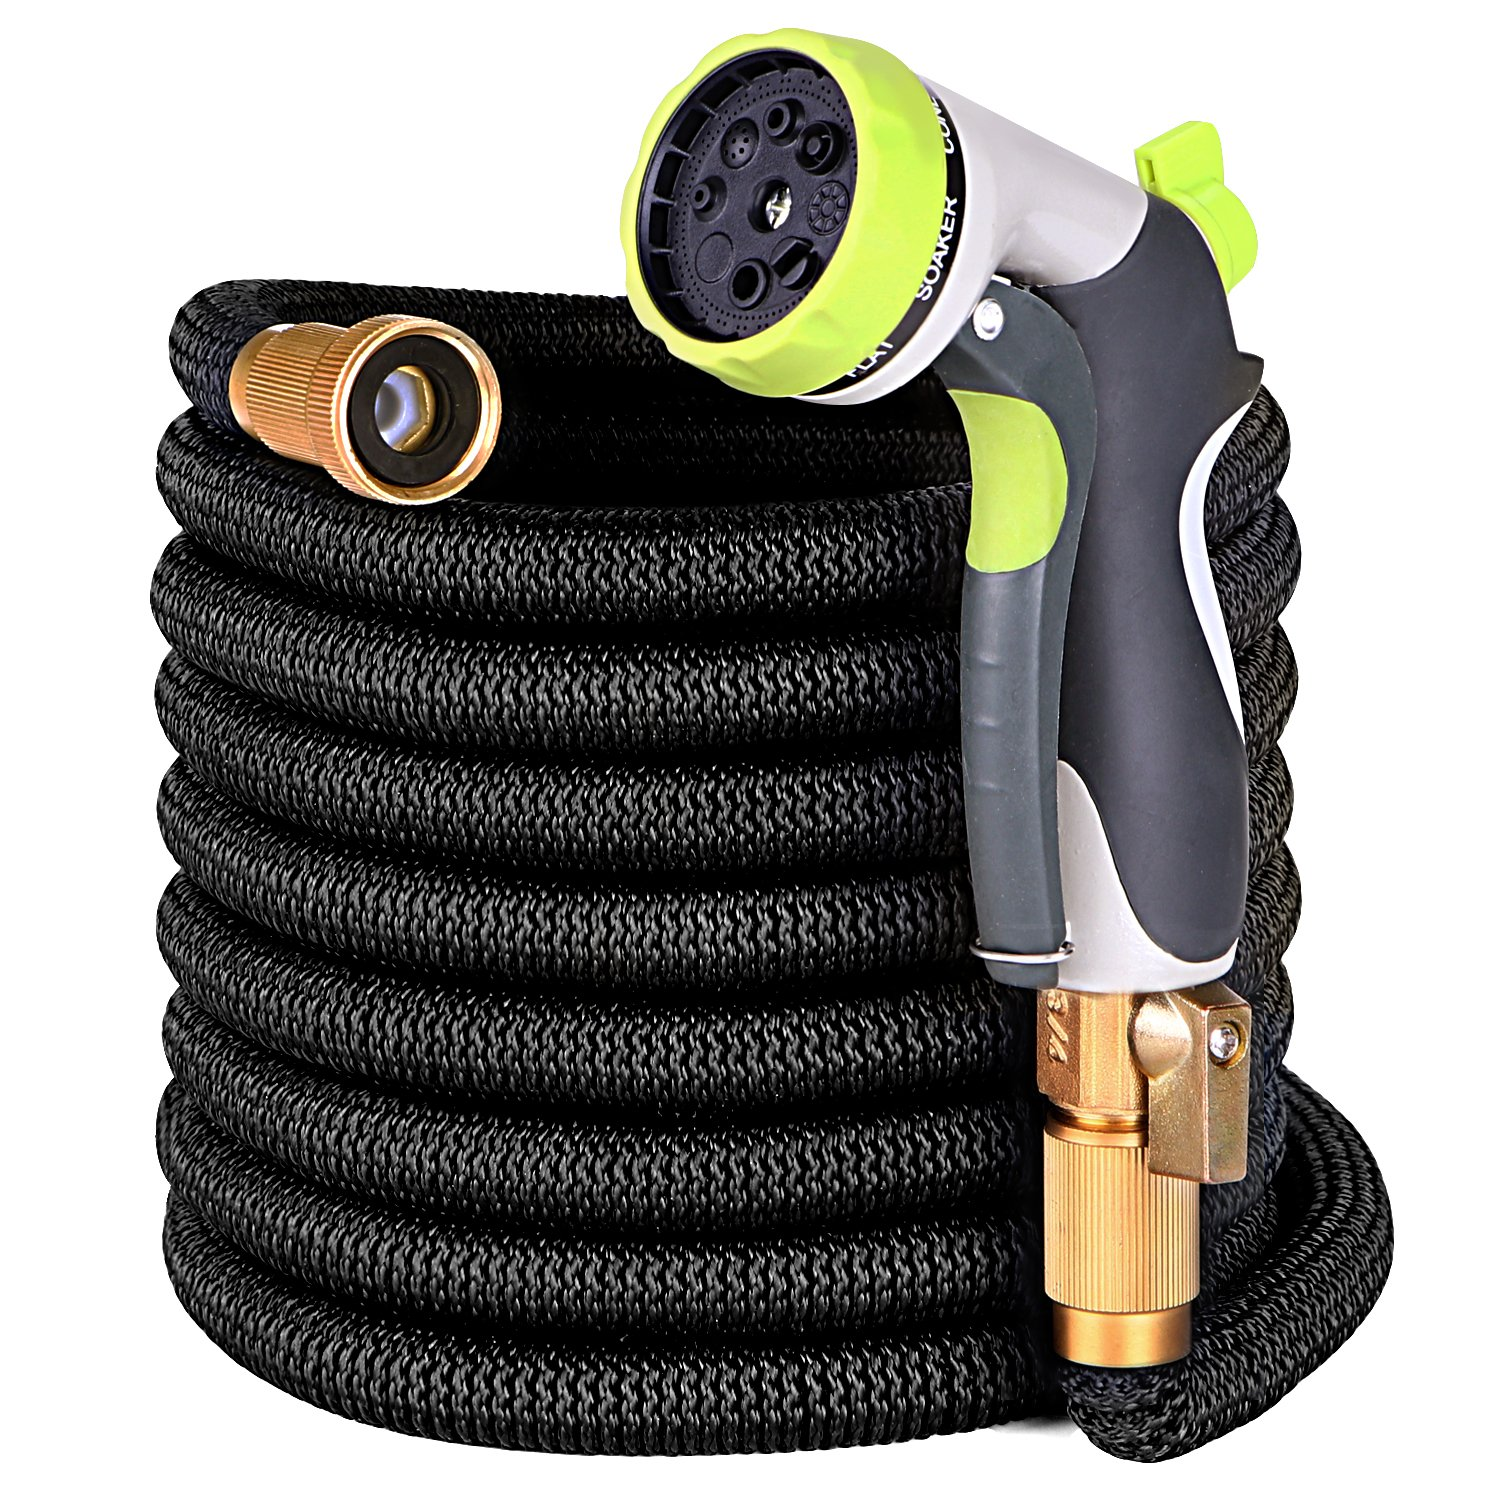 YEAHBEER 50 ft Garden Hose,Latex Core 3/4 Solid Brass Fittings,Durable Lightweight Expandable Water Hose,8-Mode High Pressure Spray Nozzles,Free Storage Bag + Hook (50FT)